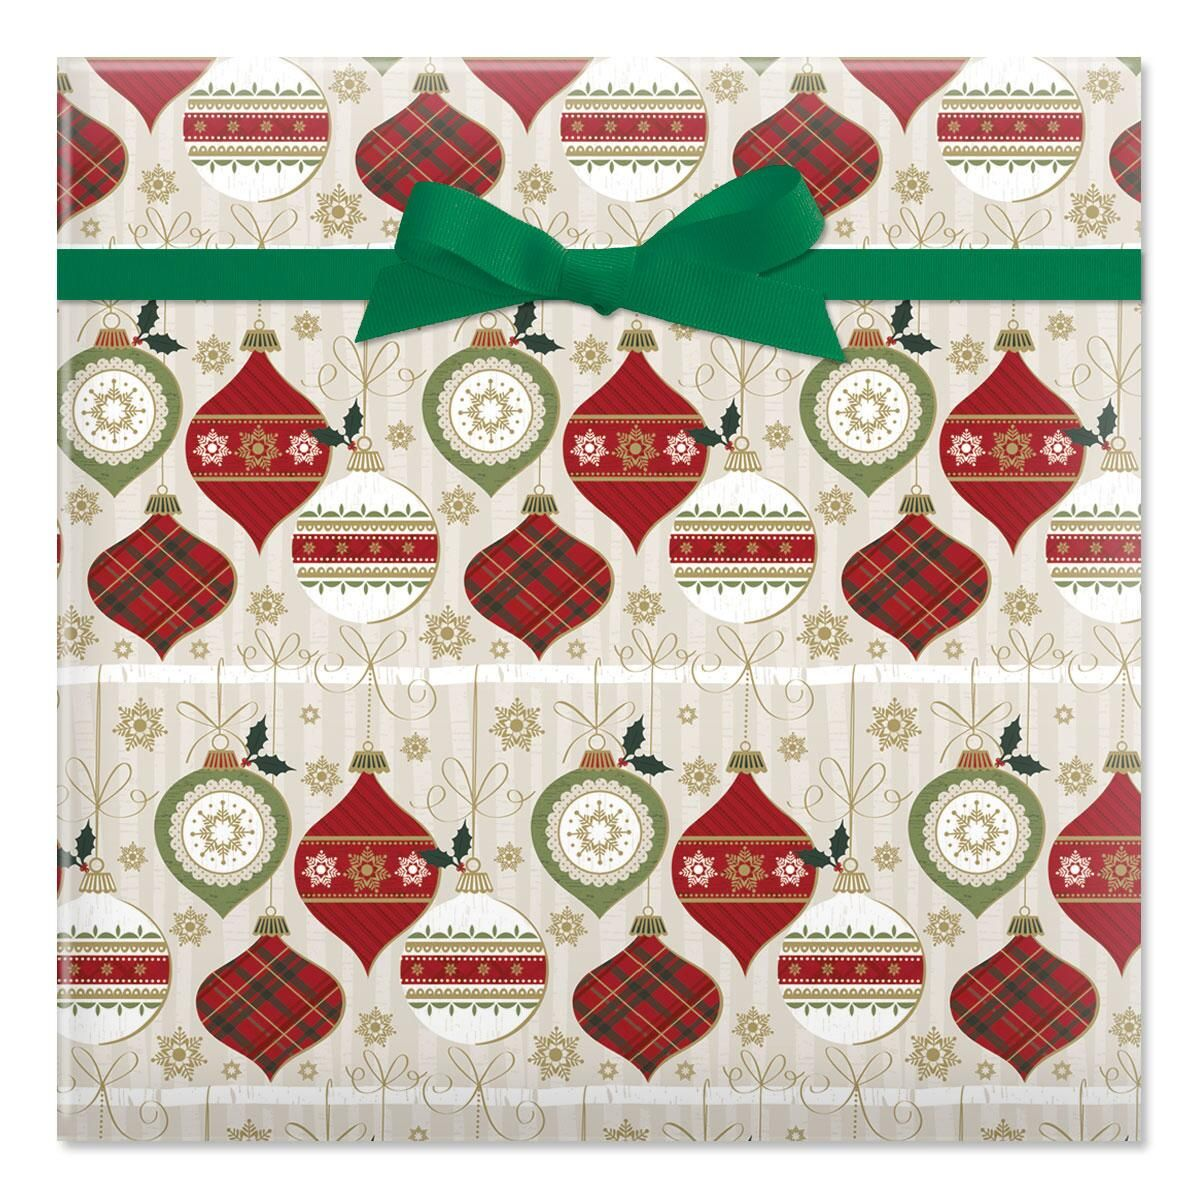 Birchwood Baubles Jumbo Rolled Gift Wrap